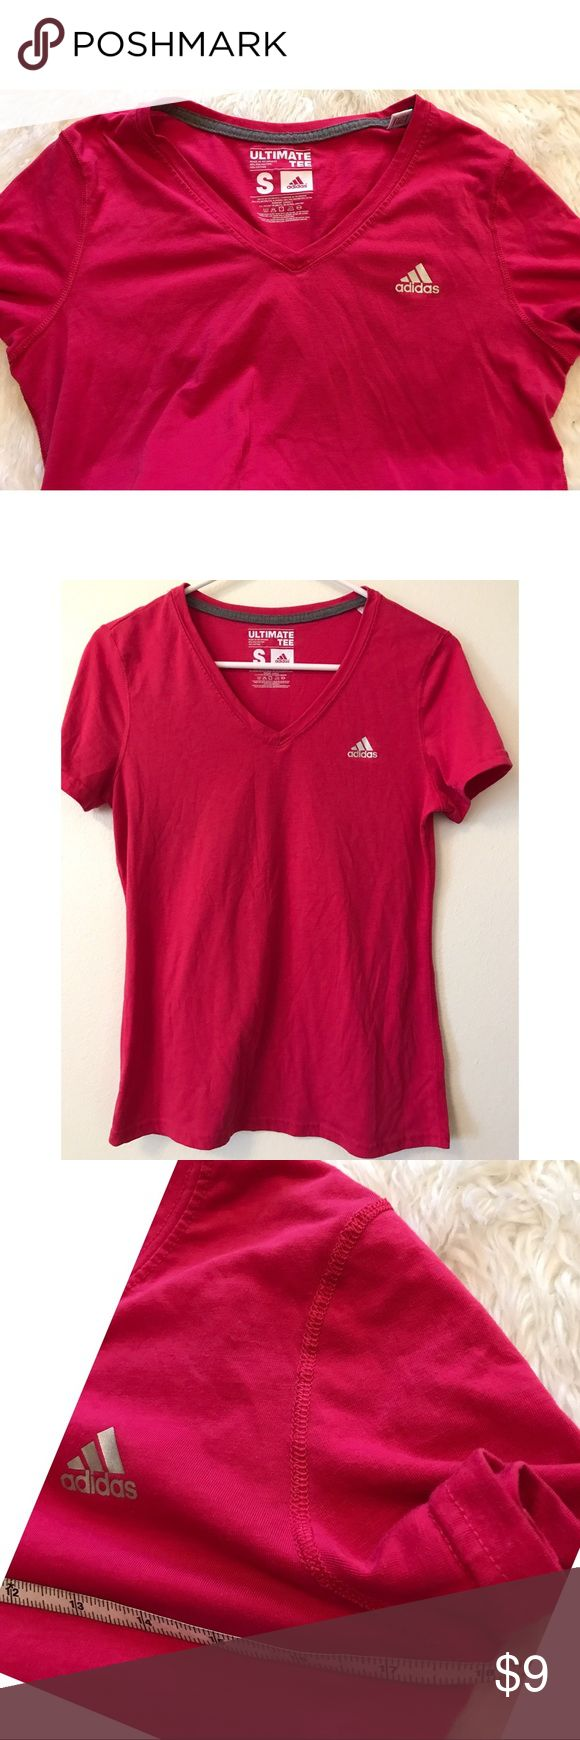 Rose Pink Adidas Workout Shirt -Bundle & save!!  -Check out my other listings for more great deals!  -NO TRADES OR HOLDS -I try my best to do next day shipping  ❌❌❌PLEASE DO NOT BUNDLE ANY OF THE LOTS TOGETHER, the shipping weight will be over the limit and I will cancel your order. If you have any questions  - please ask!  ❌❌❌ Adidas Tops